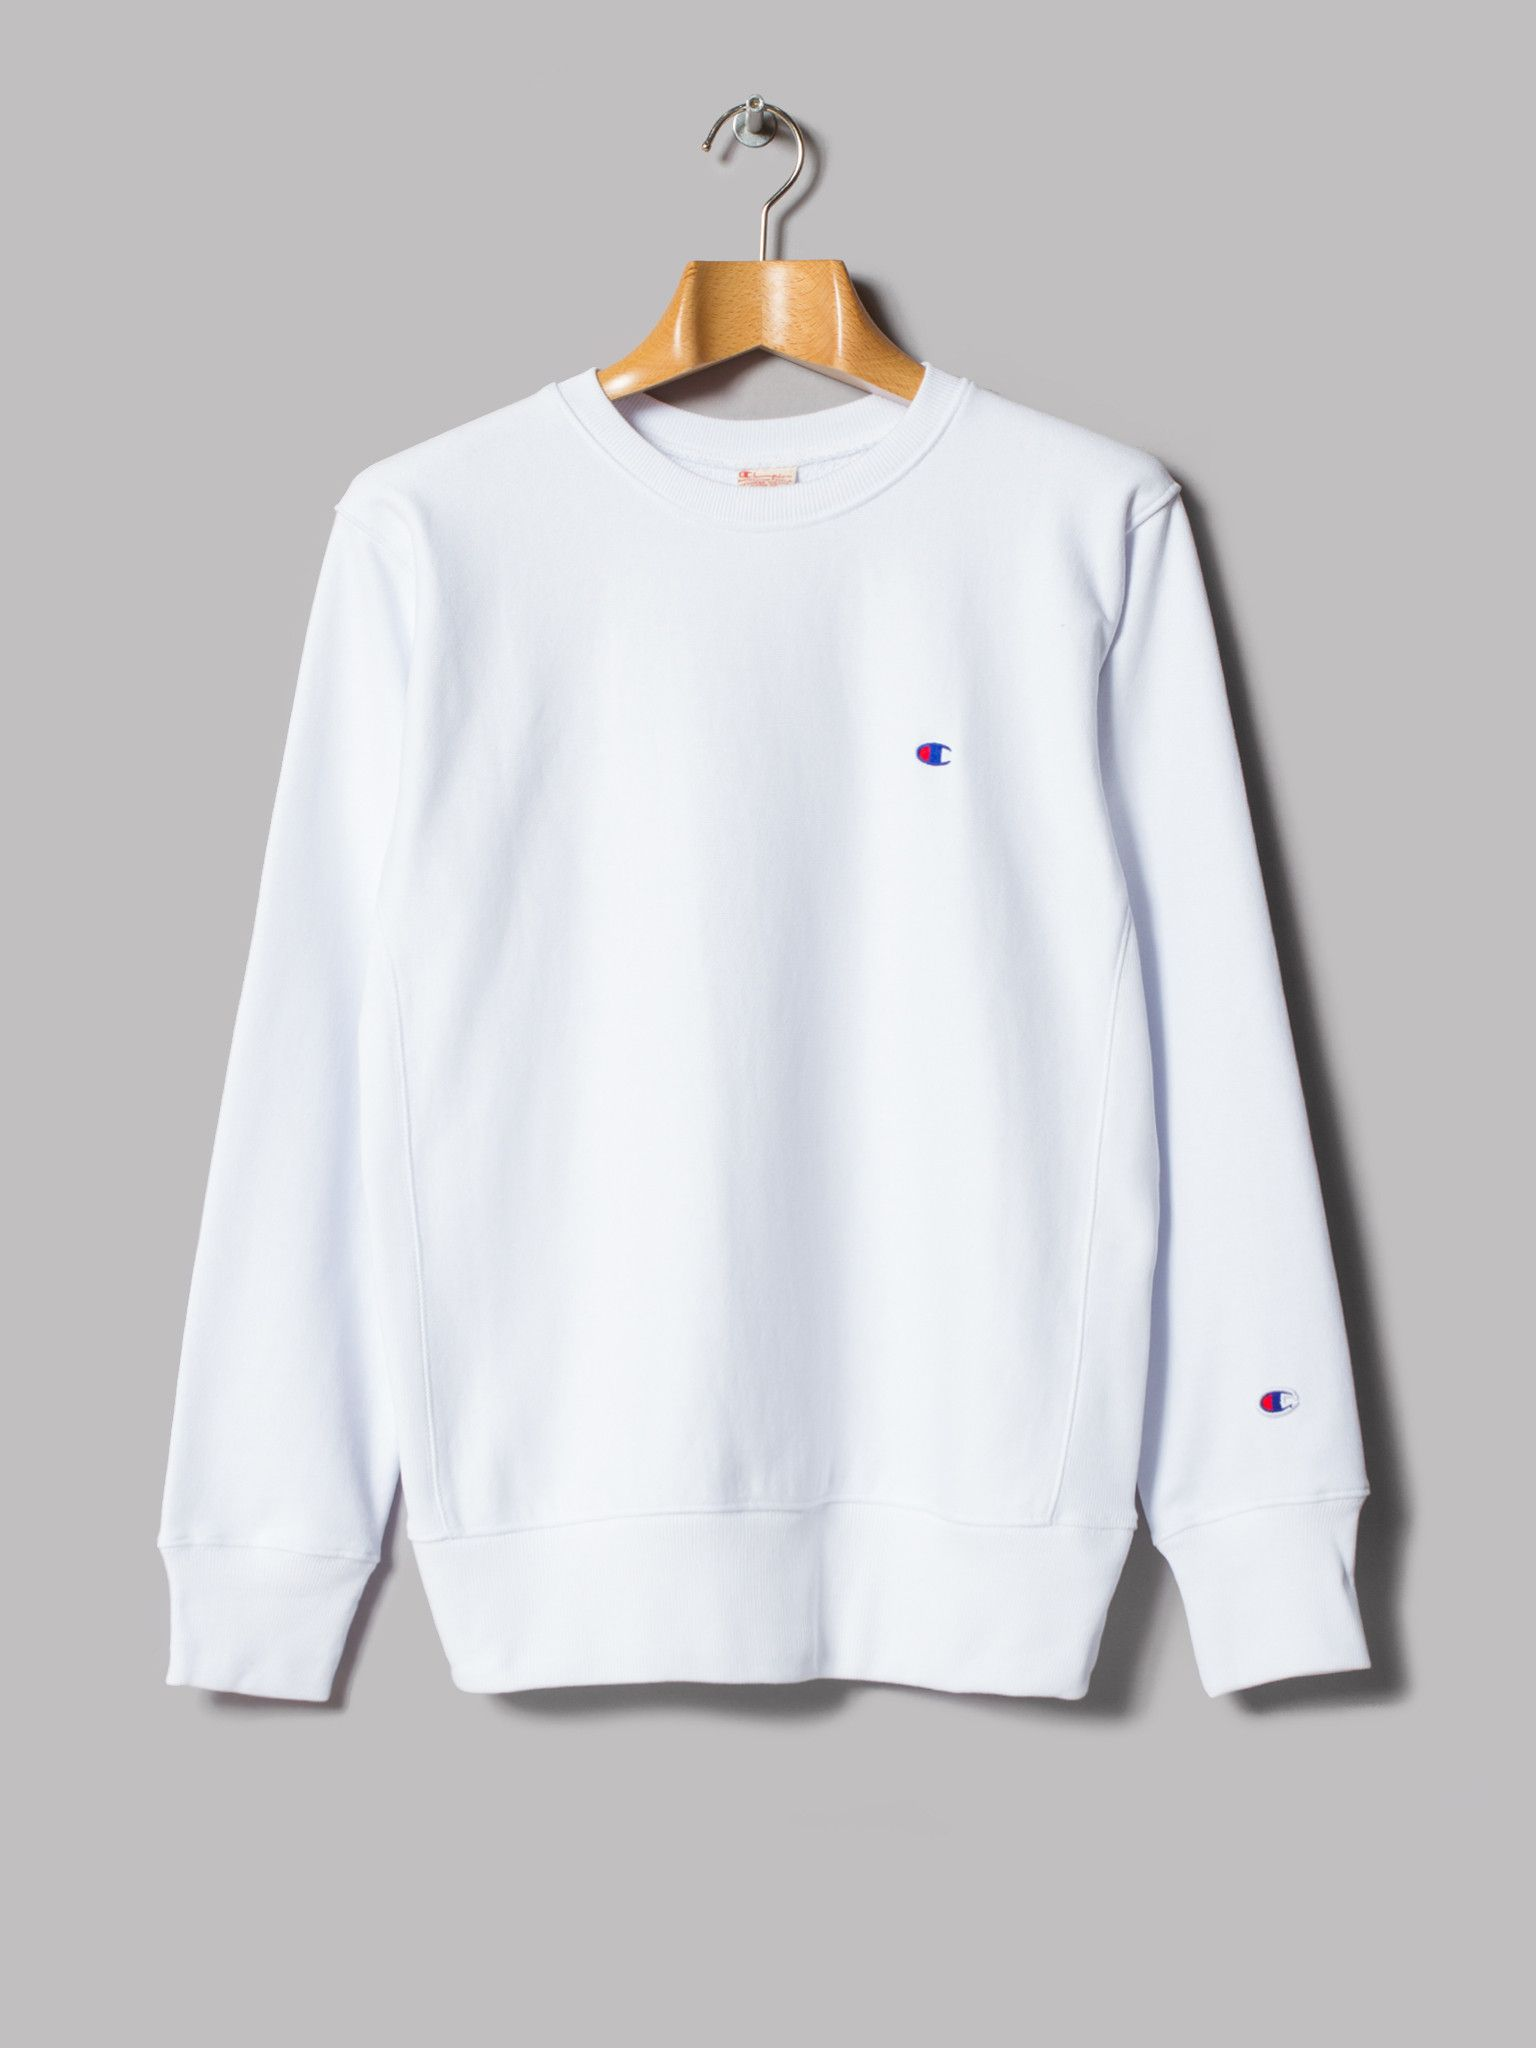 Champion Sweatshirt White | Fashion Ql